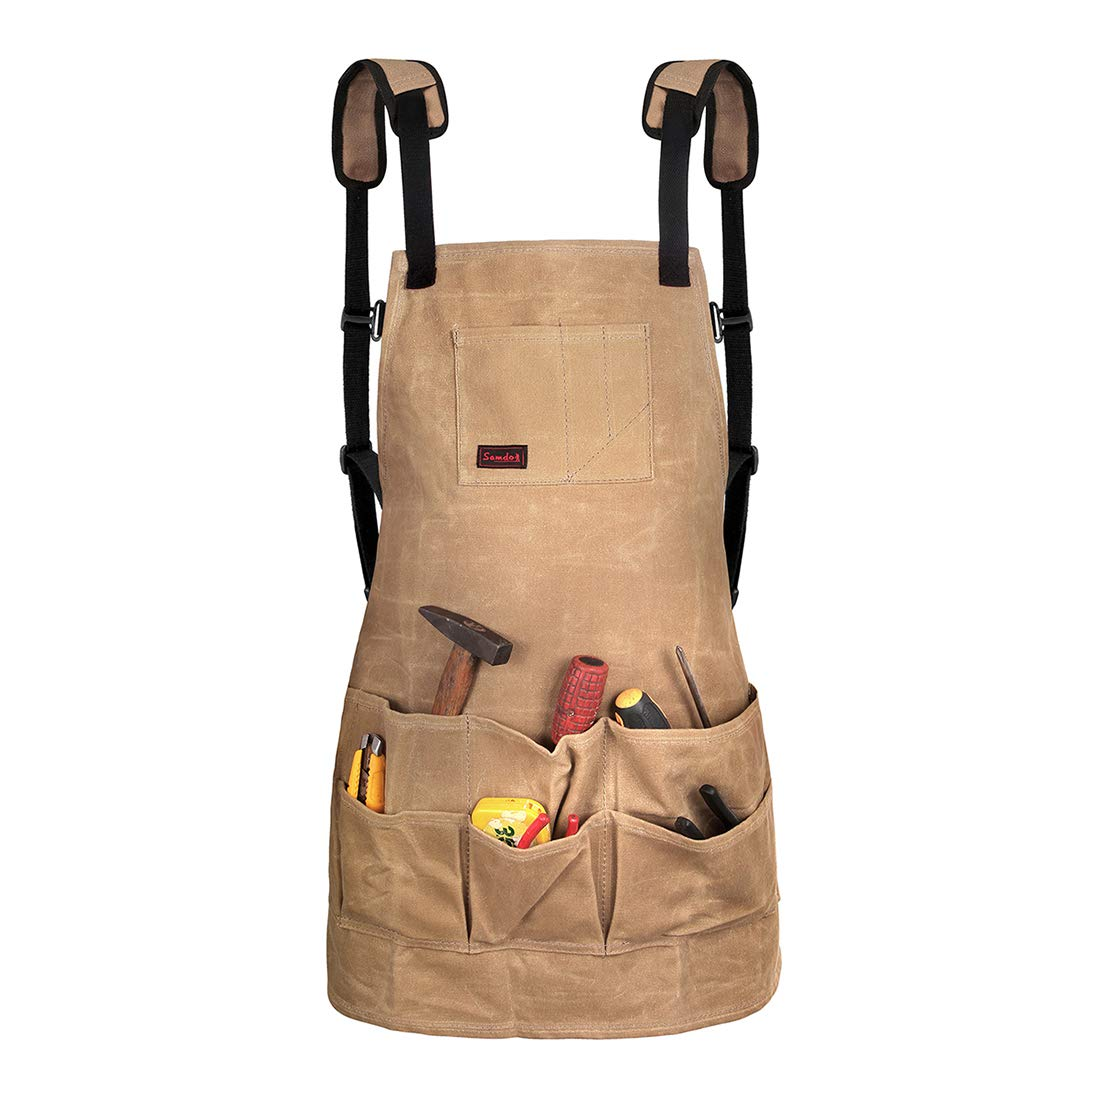 Samdo Water Resistant Waxed Canvas Tool Apron With Quick Release Buckle Adjustable Size